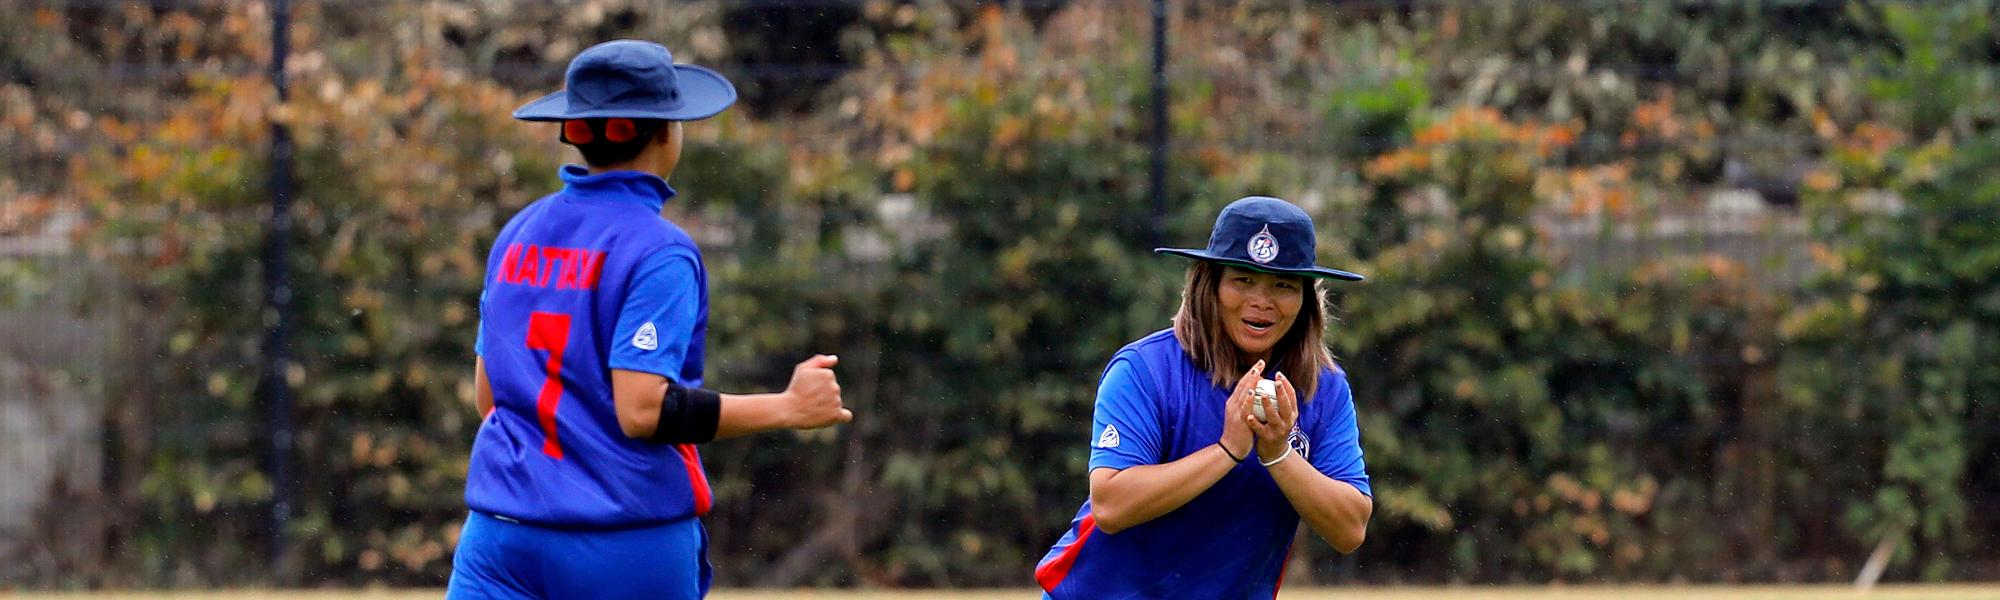 Thailand fielder takes the catch of RV Scholes, 9th Match, Group B, ICC Women's World Twenty20 Qualifier at Utrecht, Jul 10th 2018.